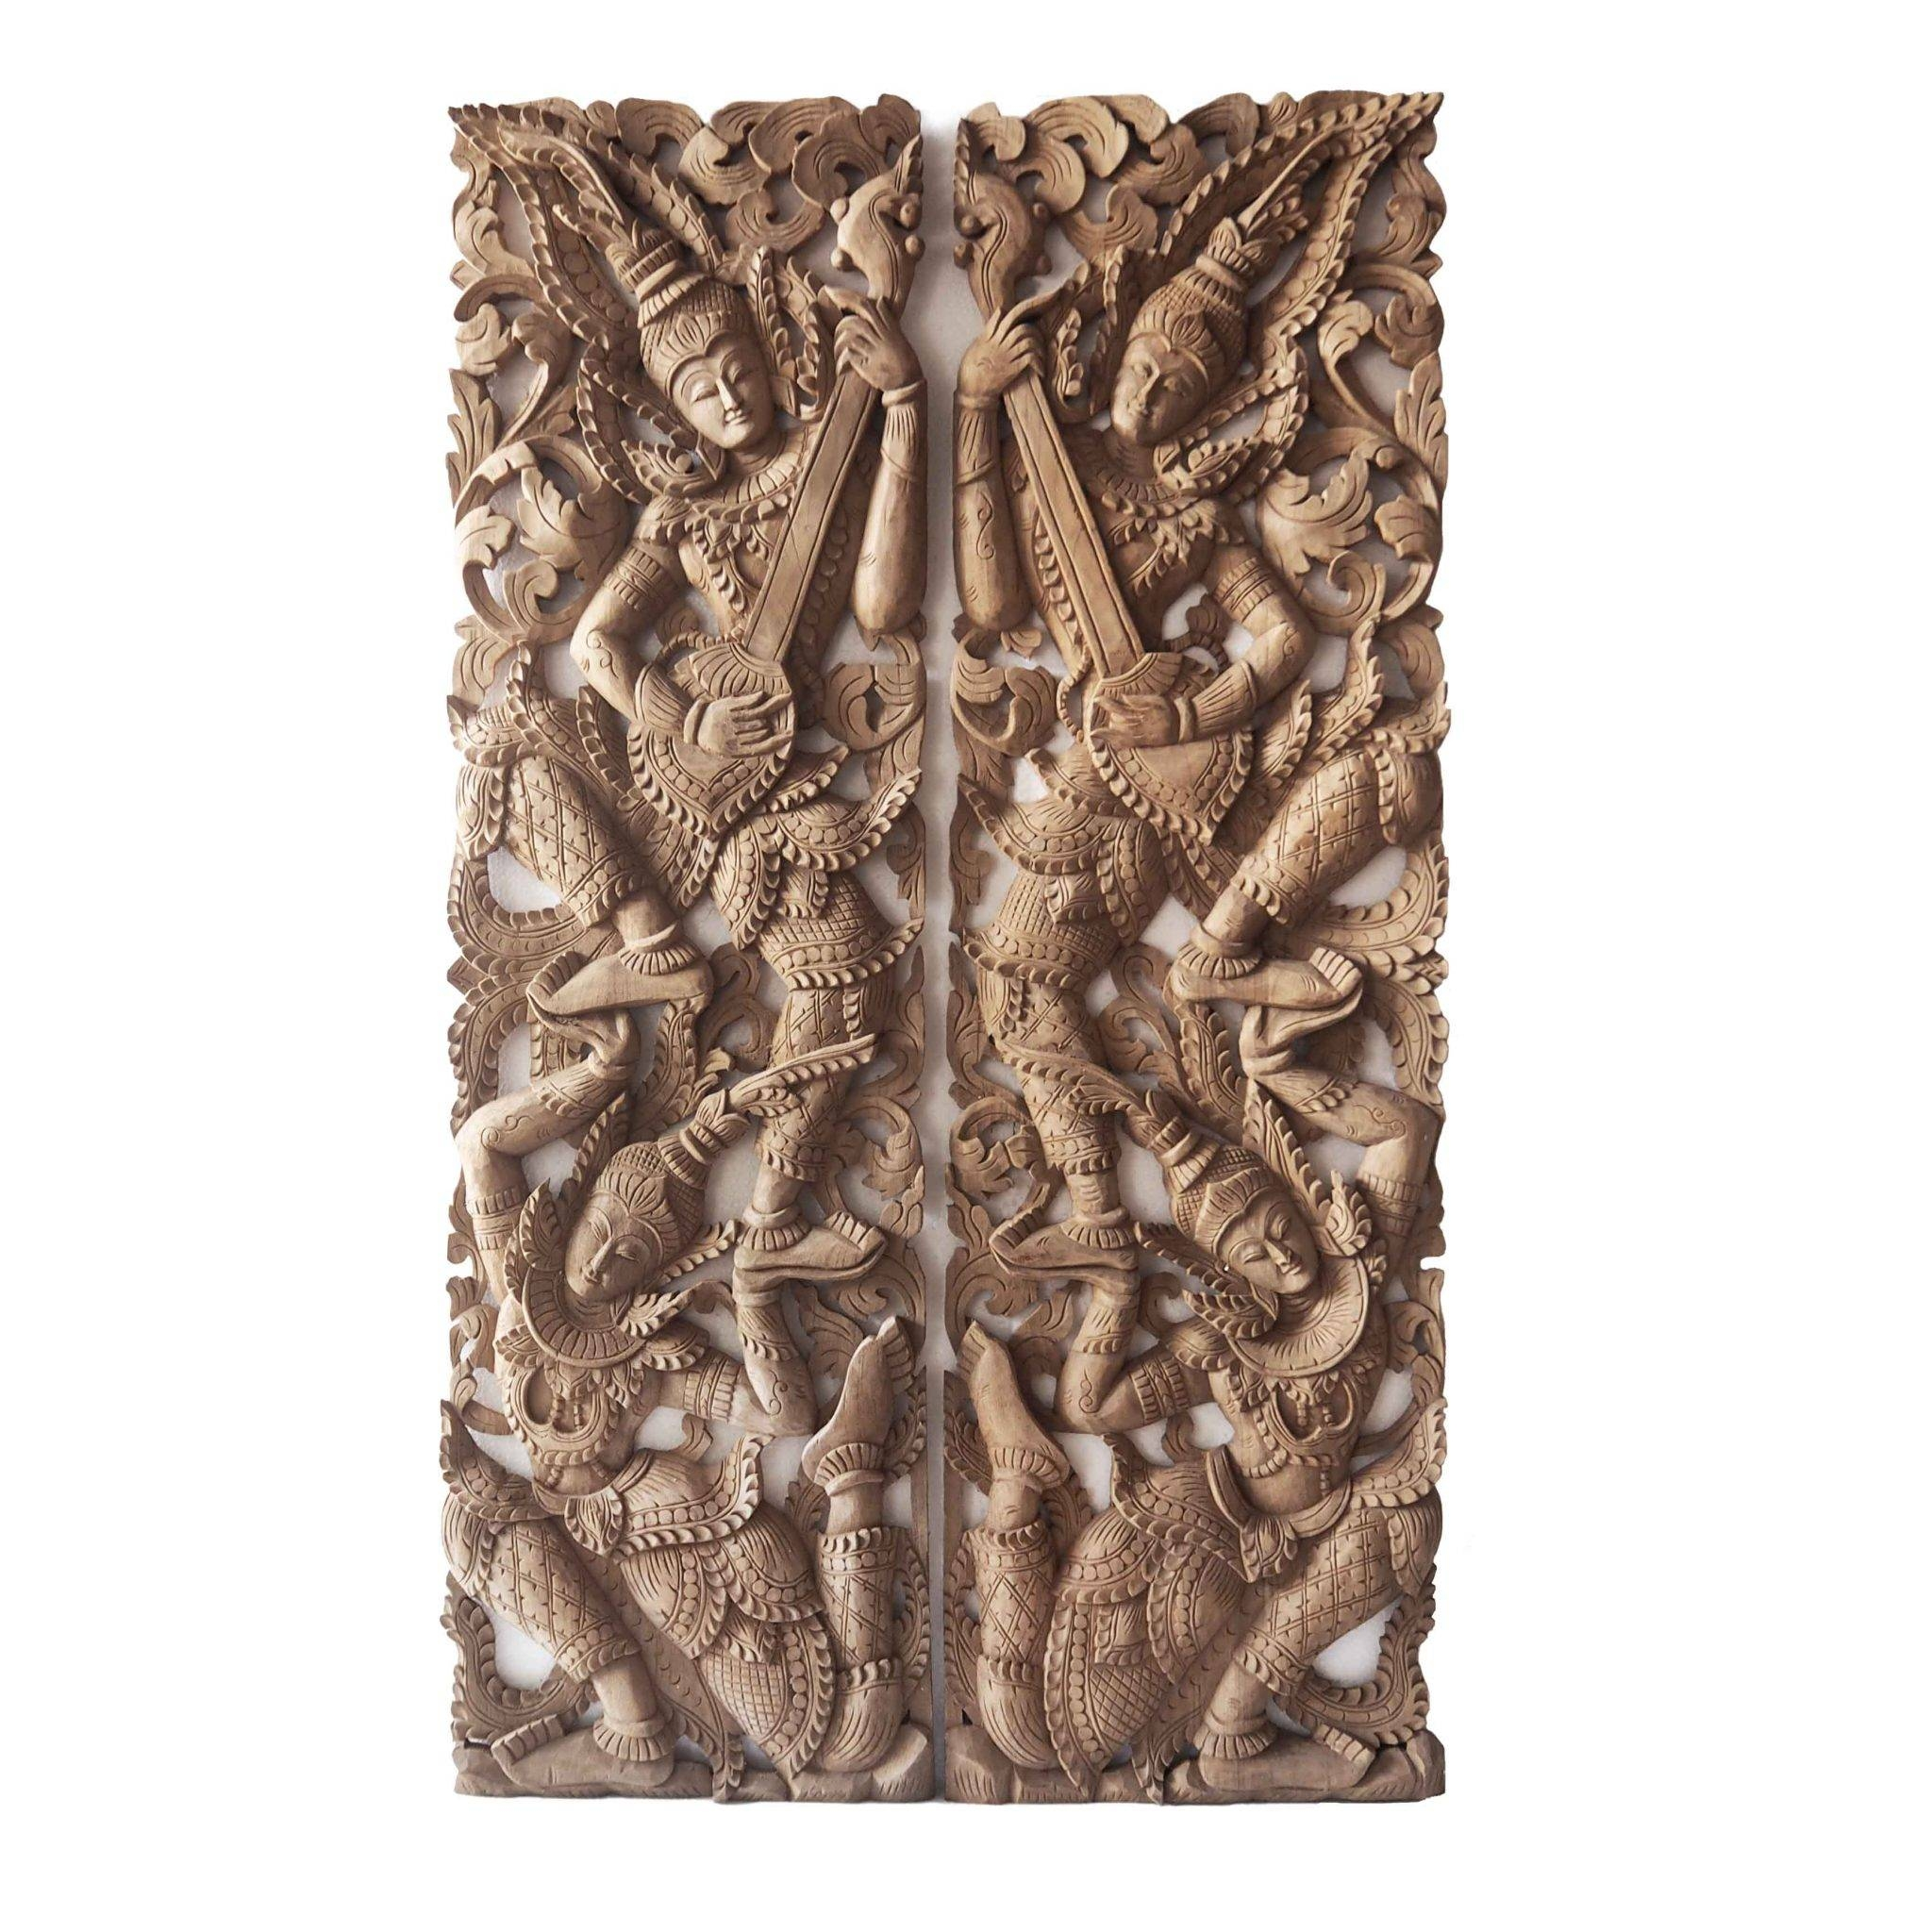 Pair Of Wooden Wall Art Panel From Thailand – Siam Sawadee Within Best And Newest Wooden Wall Art Panels (View 5 of 20)